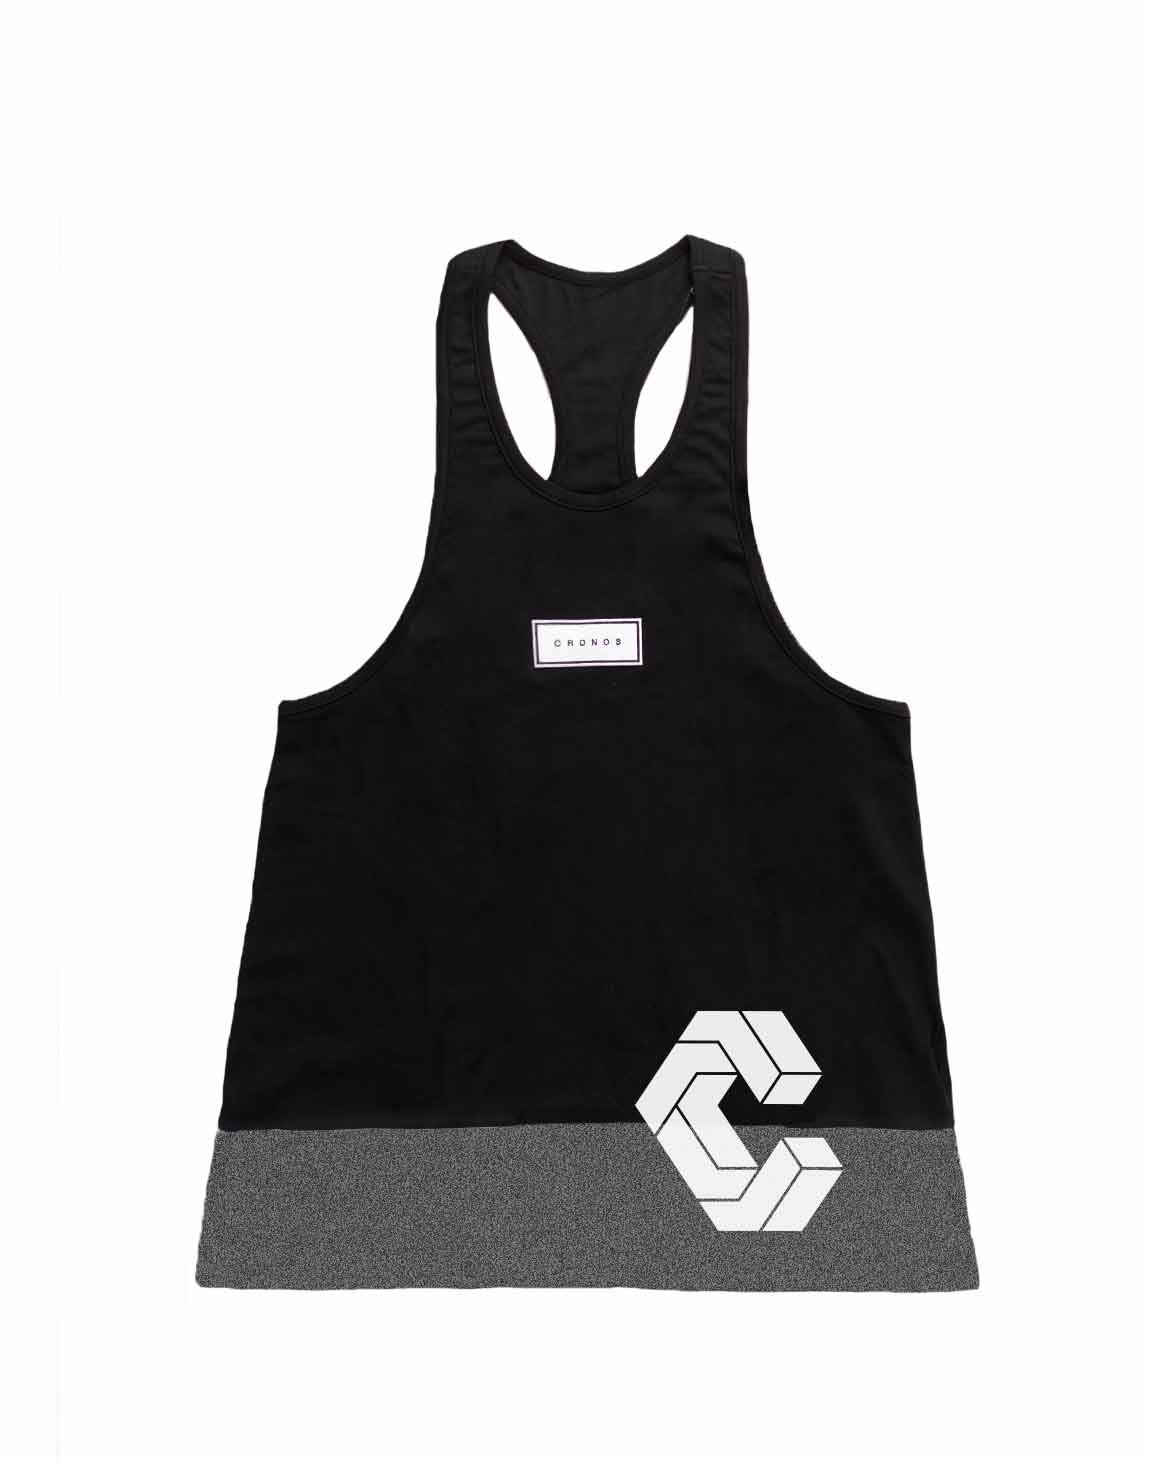 <img class='new_mark_img1' src='https://img.shop-pro.jp/img/new/icons55.gif' style='border:none;display:inline;margin:0px;padding:0px;width:auto;' />CRONOS BOX MODE SIDE LOGO TANK TOP【BLACK×C.GRAY】